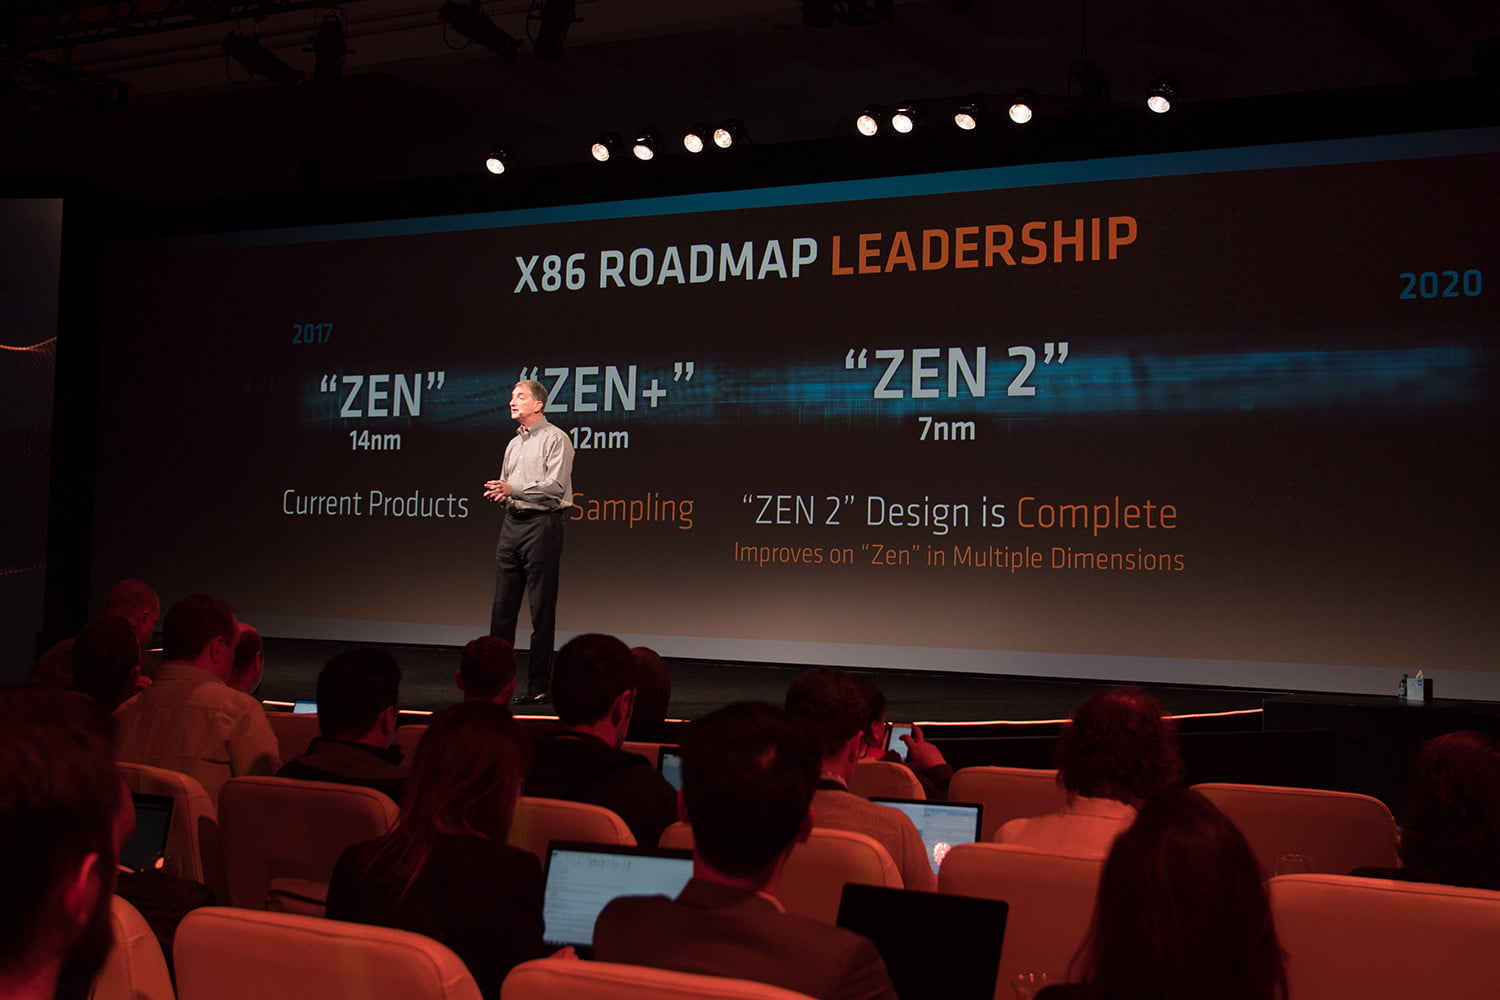 amd second gen ryzen news ces 2018 x86 zen roadmap